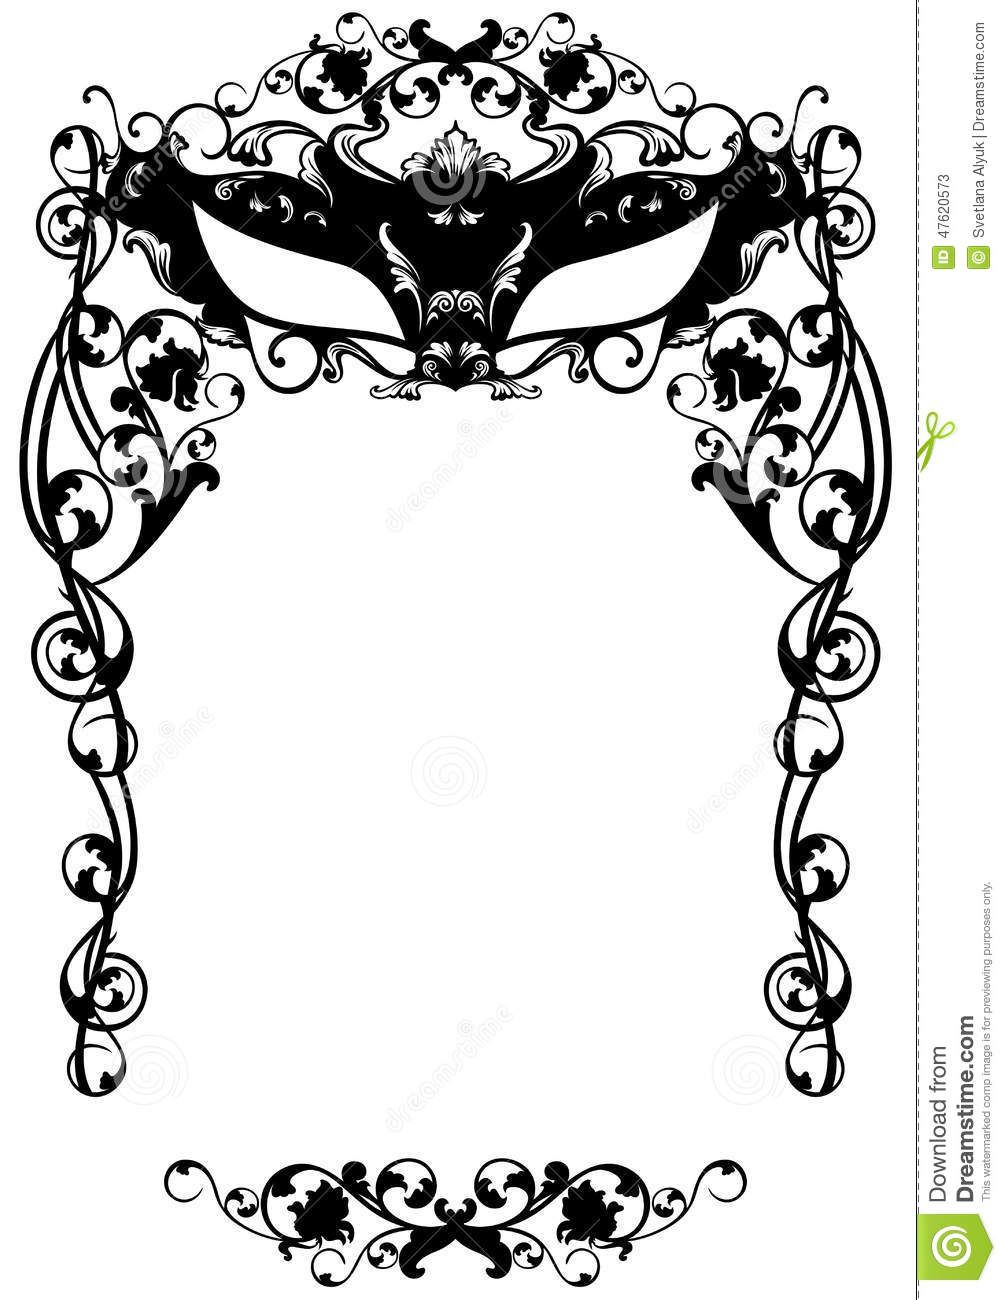 Invitation To Masquerade Party With Carnival Mask Black And White Masquerade Party Invitations Party Invite Template Invitation Template